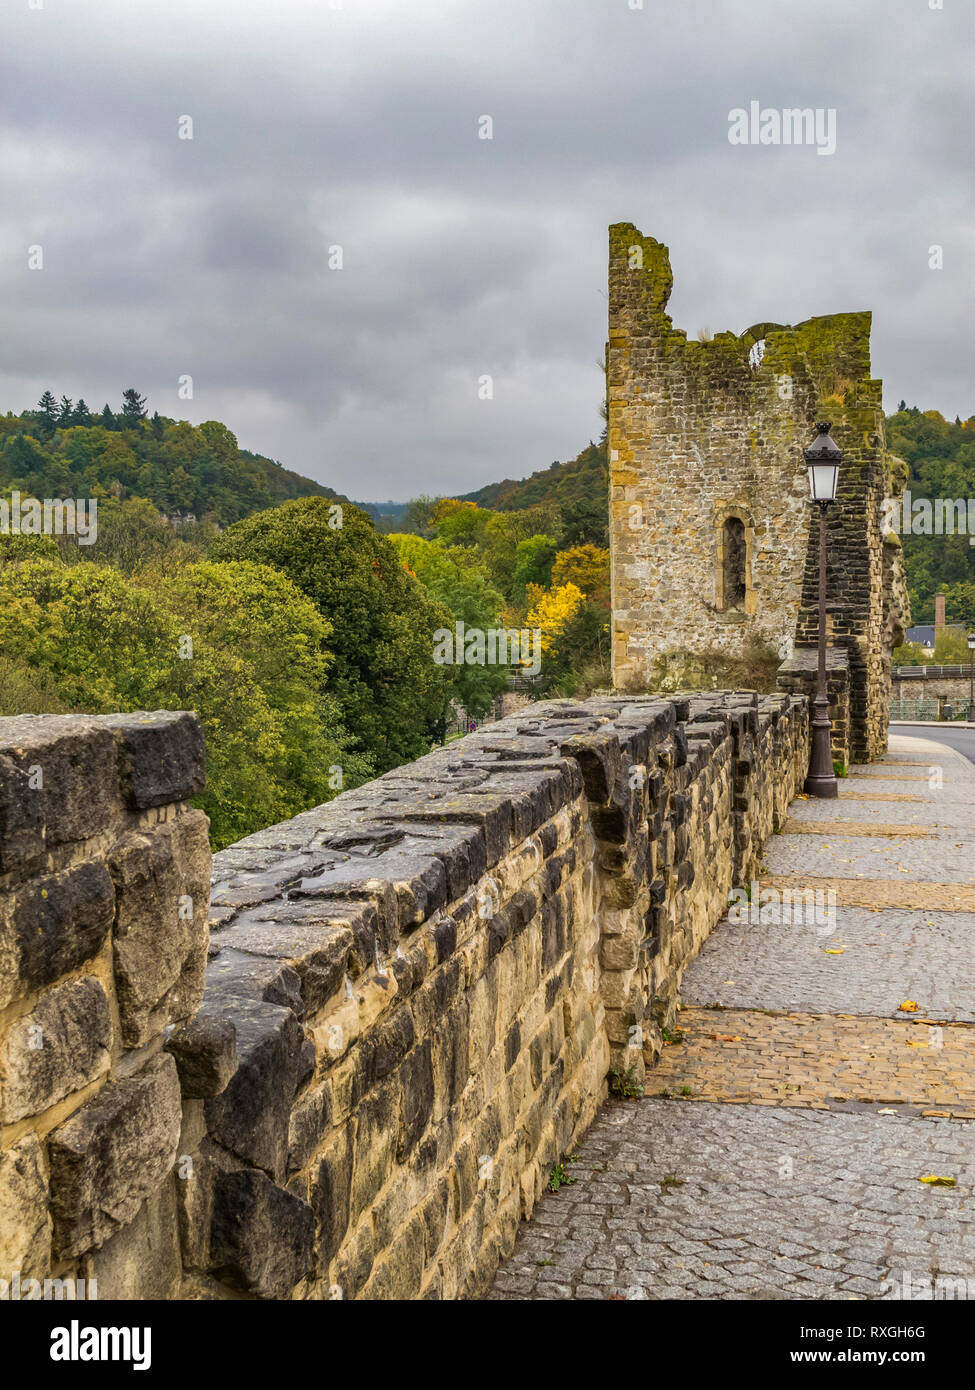 Hollow Tooth on the Bock rock- the remains of a tower of one of the fortress gates in Luxembourg City, Grand Duchy of Luxembourg on a rainy October da - Stock Image